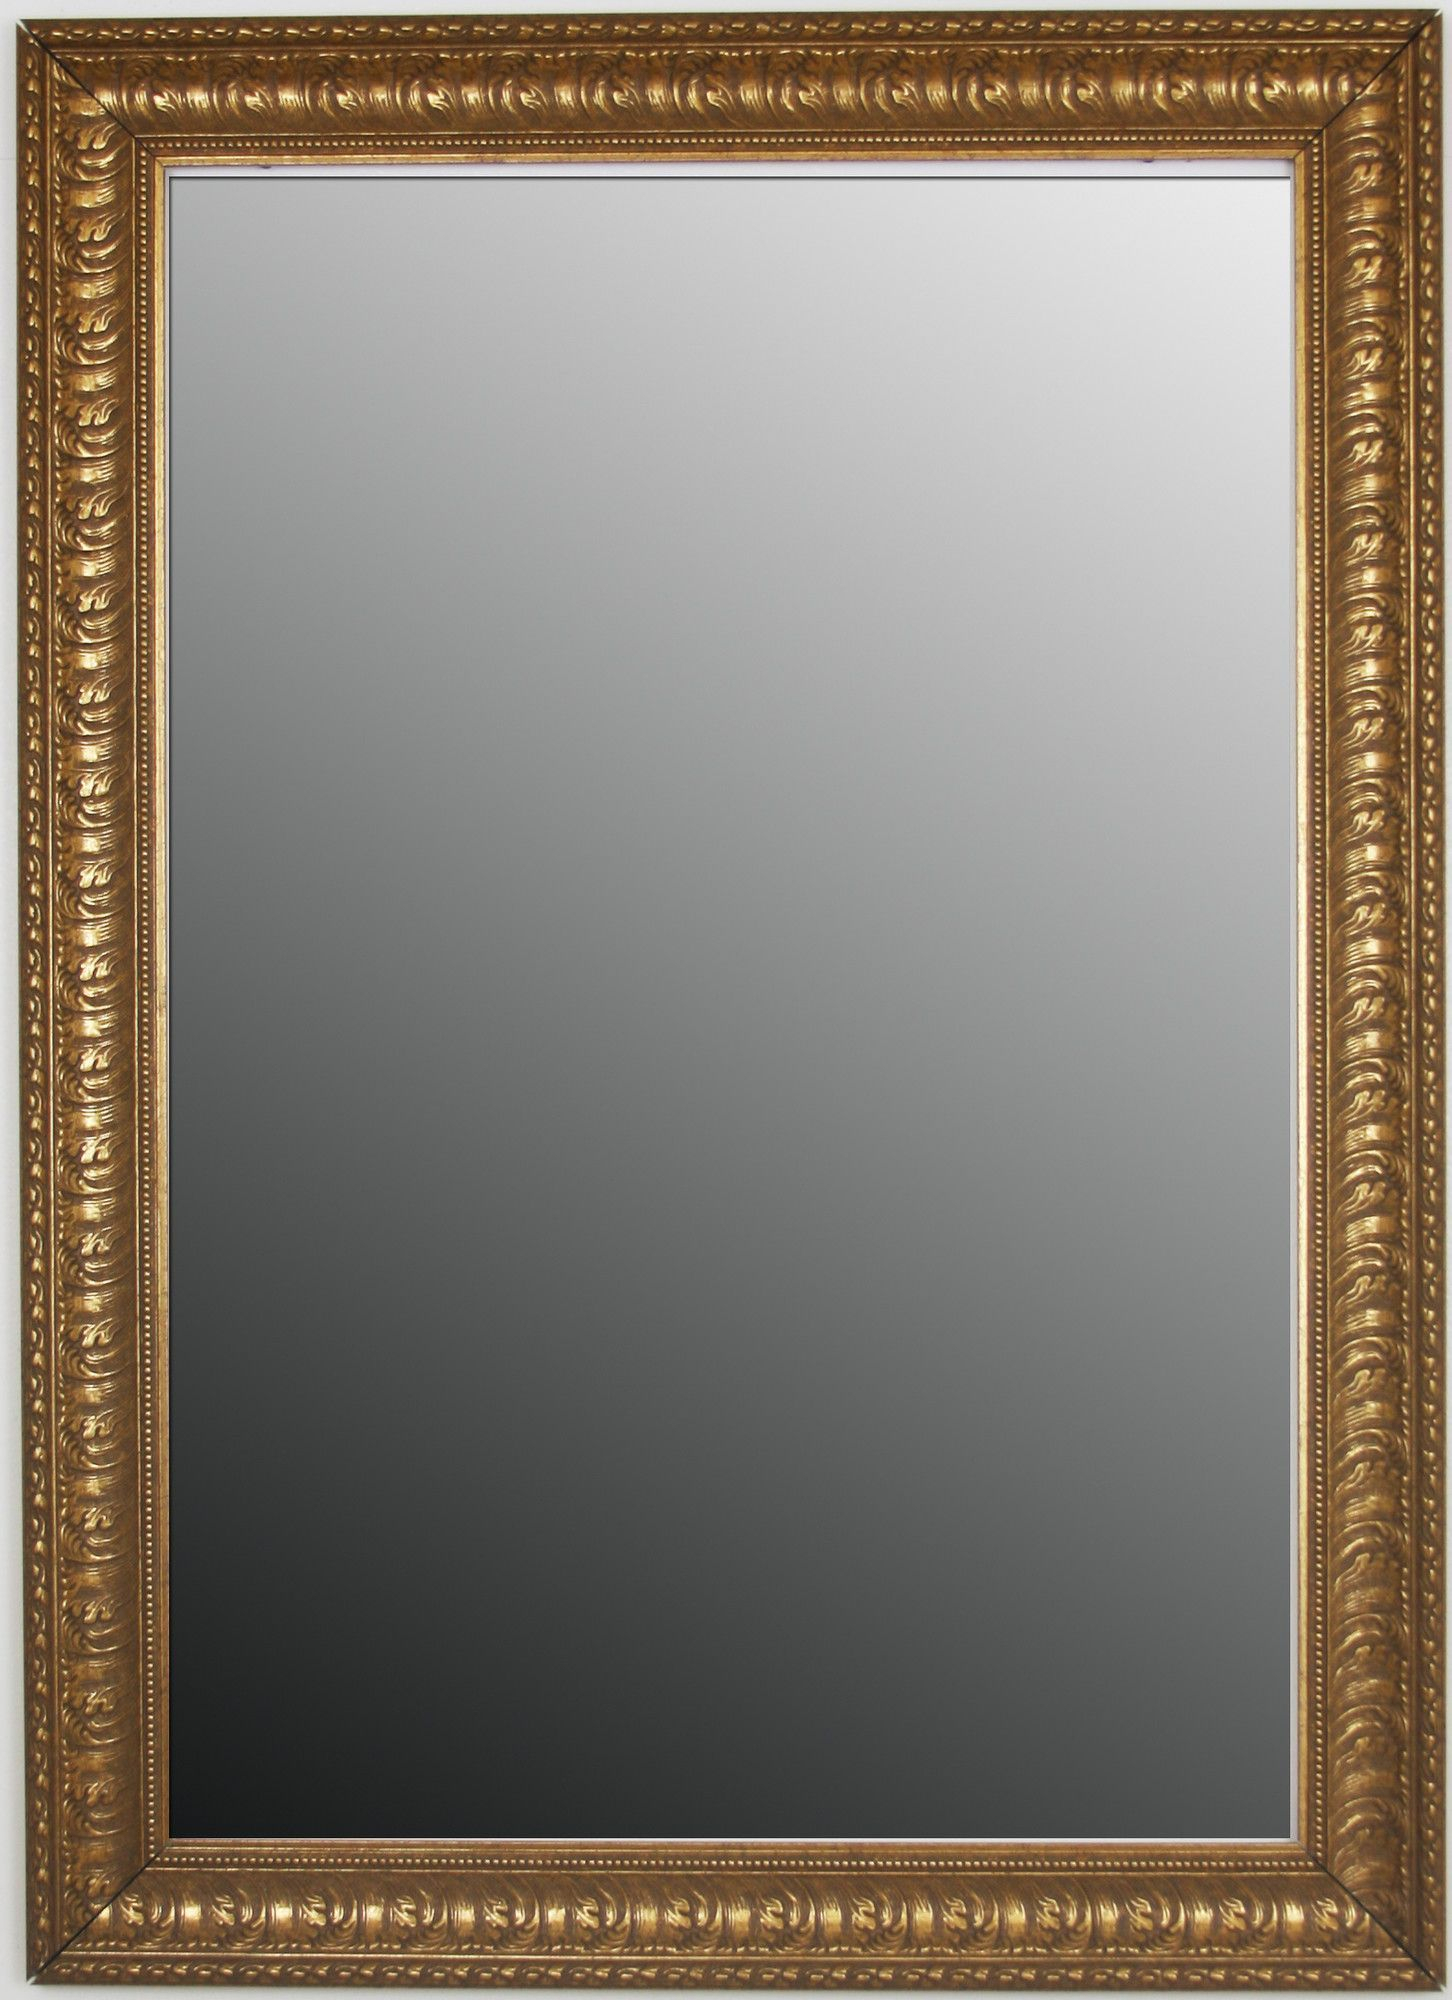 Ocean Waves Beaded Accents Framed Wall Mirror | Products Inside Beaded Accent Wall Mirrors (View 22 of 30)